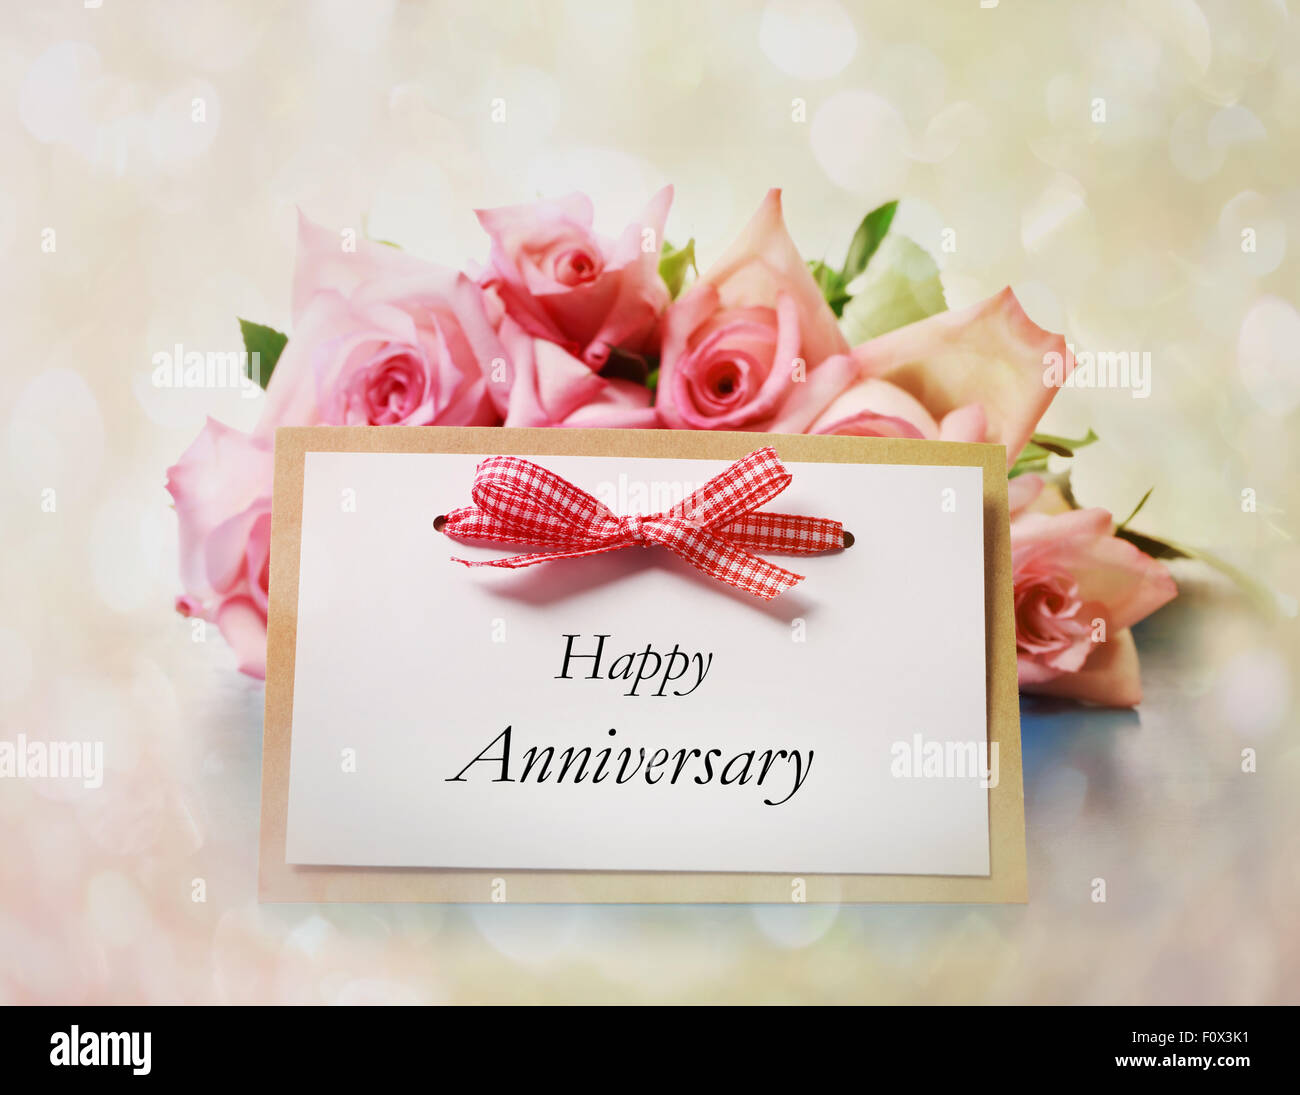 Happy Anniversary Greeting Card With Roses Stock Photo 86625477 Alamy